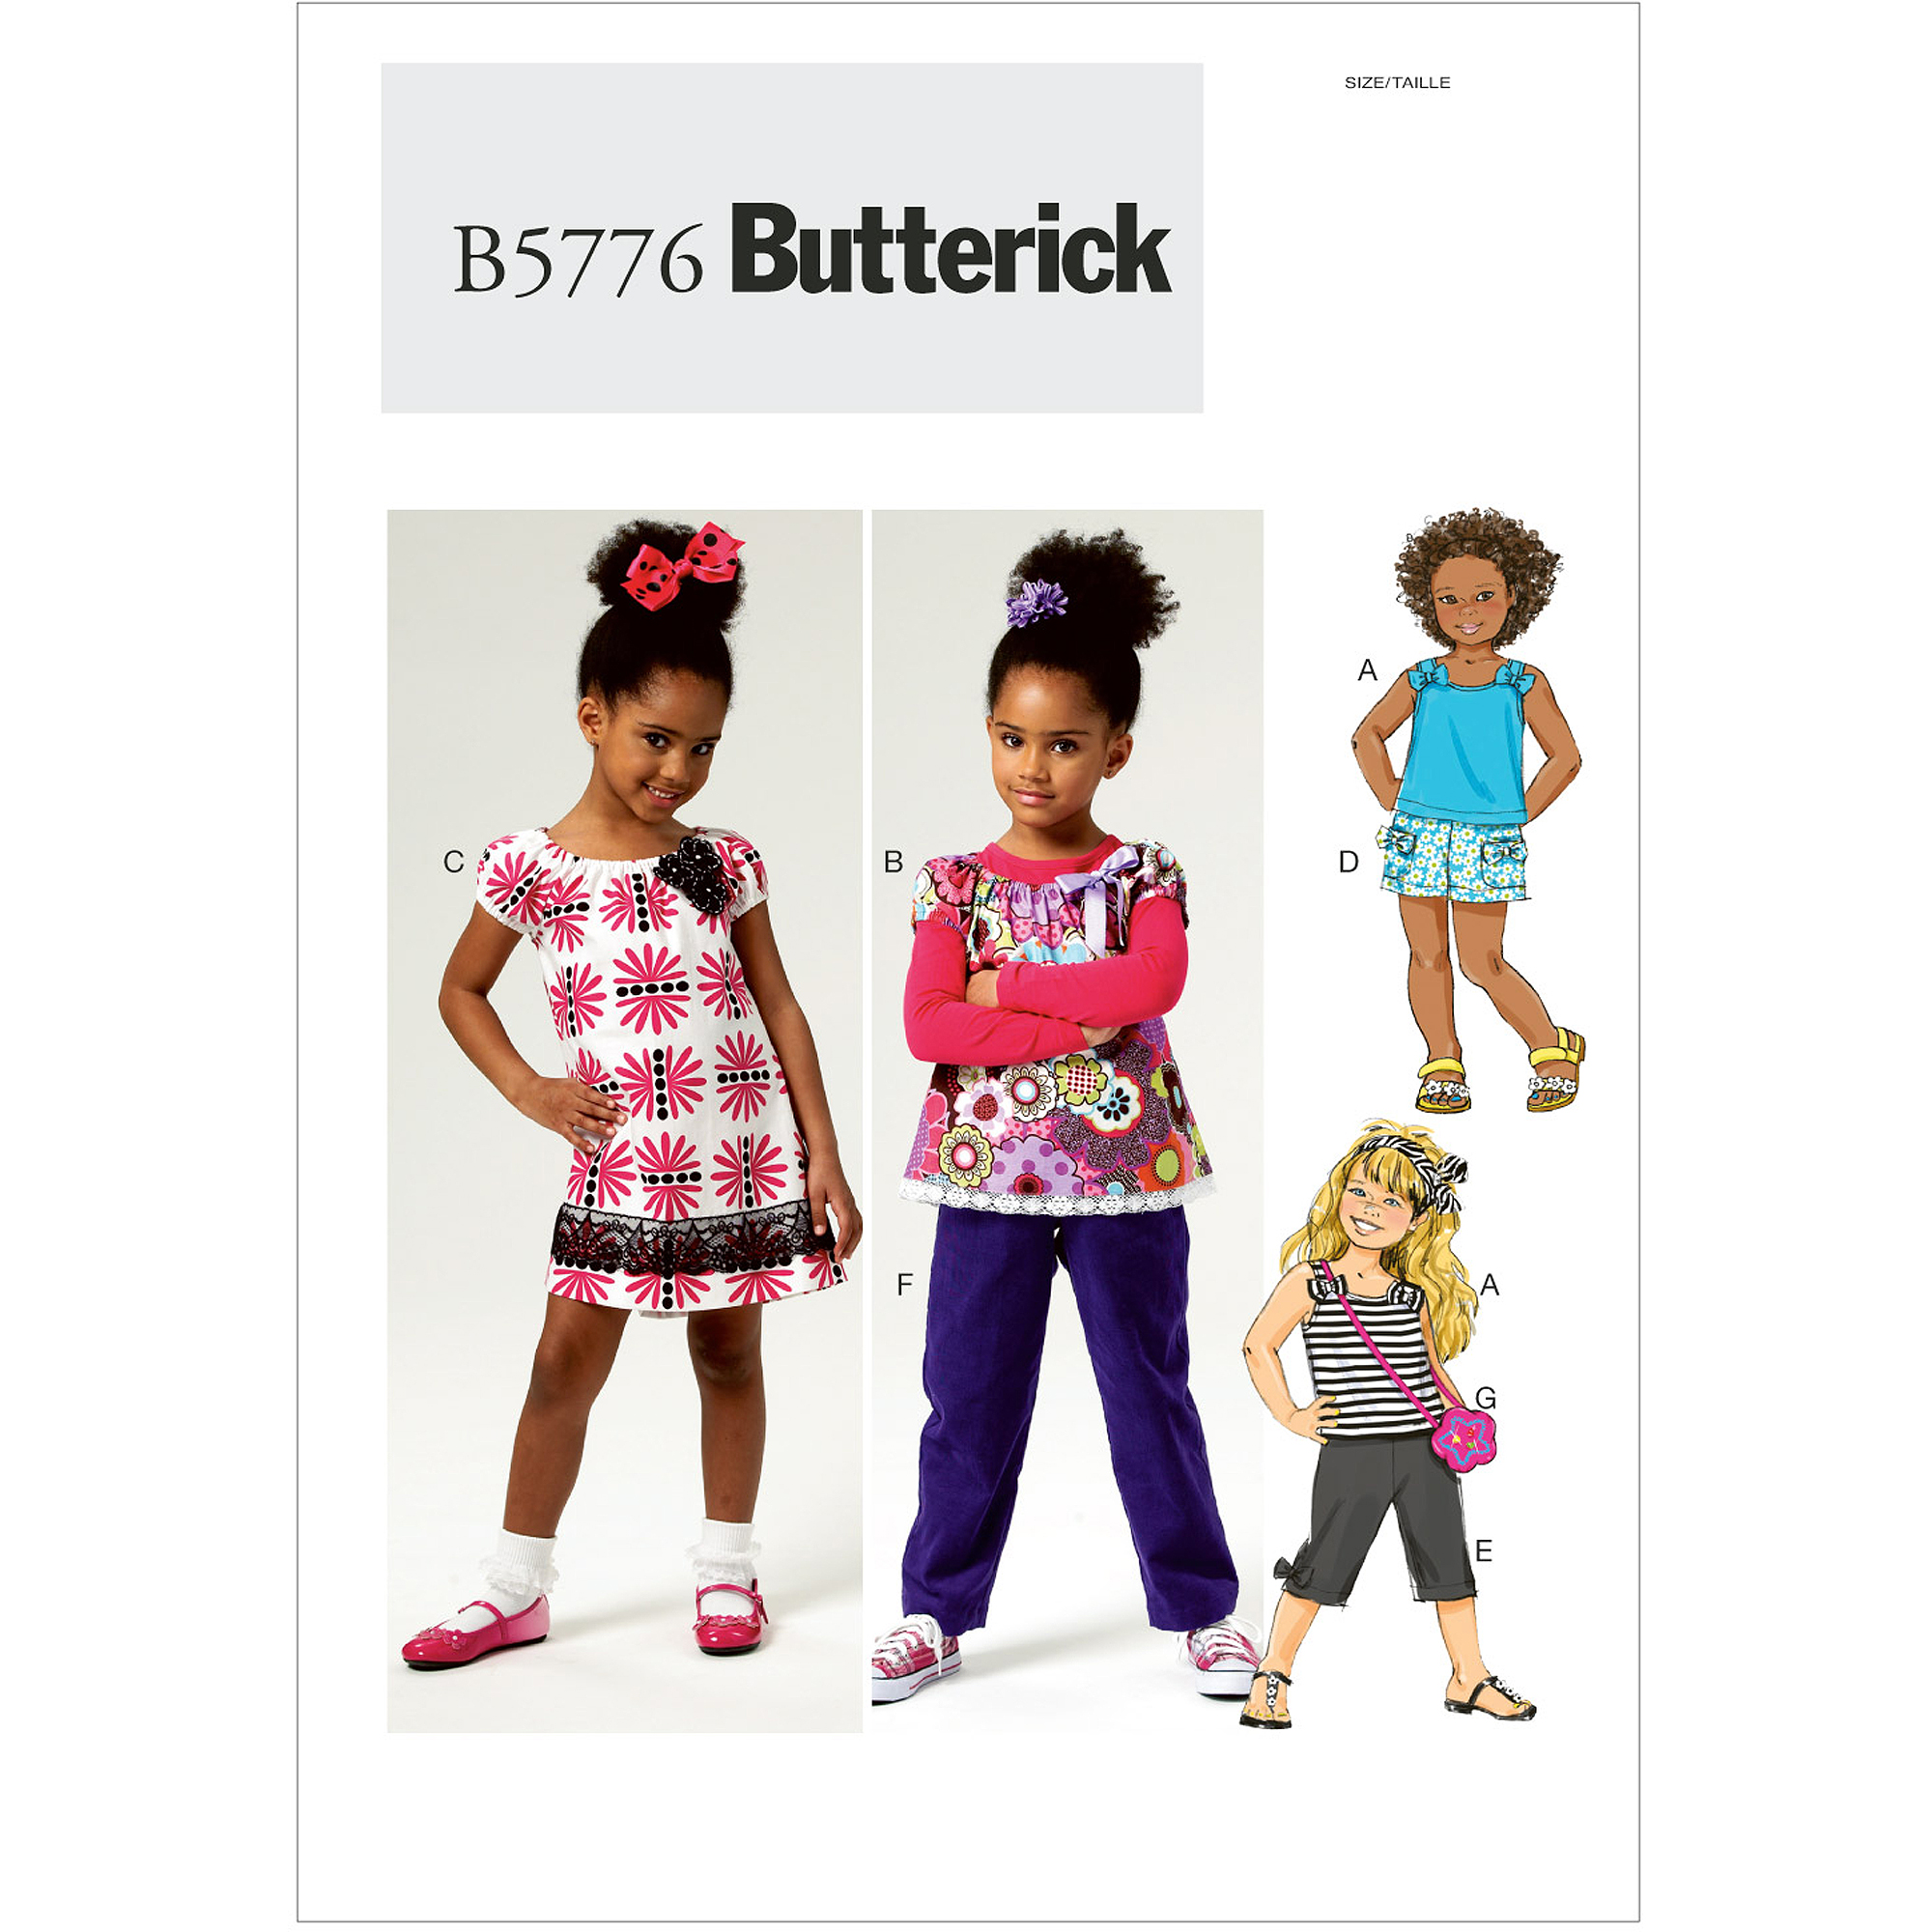 Butterick Pattern Children's and Girls' Top, Dress, Shorts, Pants and Bag, CDD (2, 3, 4, 5)